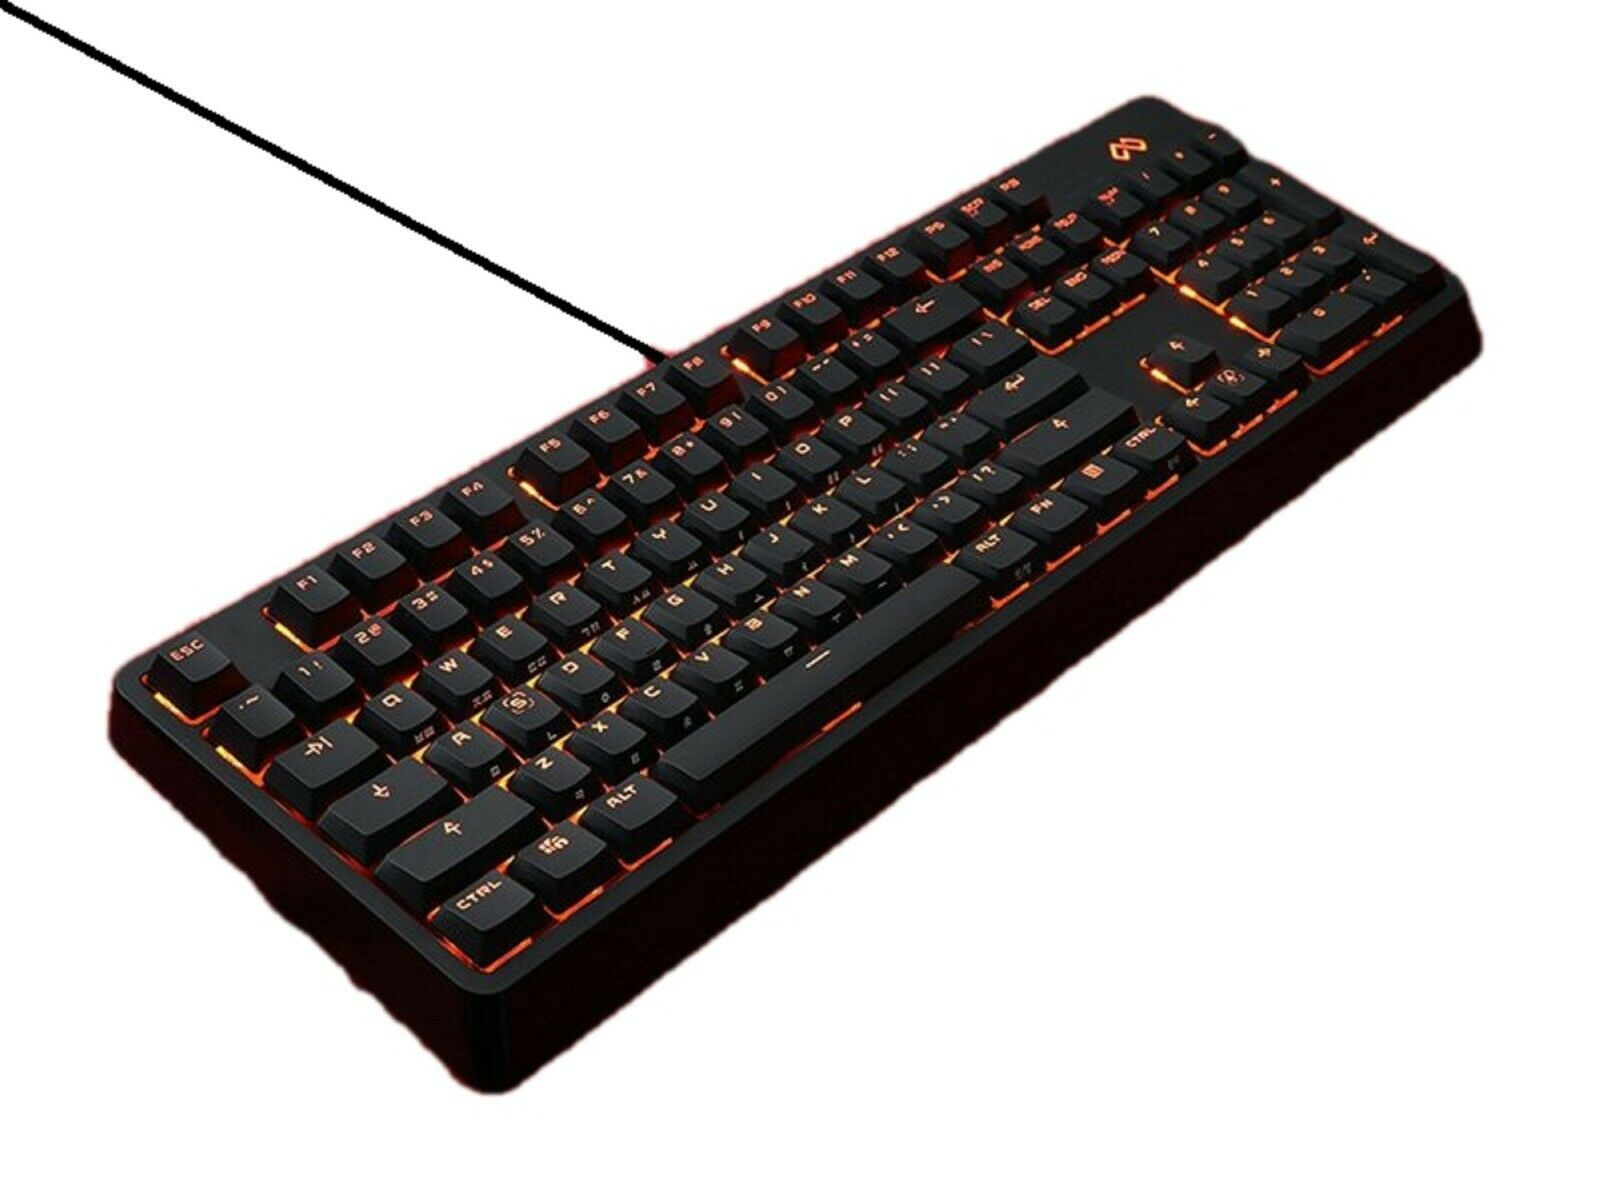 Maxtill G800K Mechanical Gaming Keyboard Kailh Longhua Switch USB Wired LED